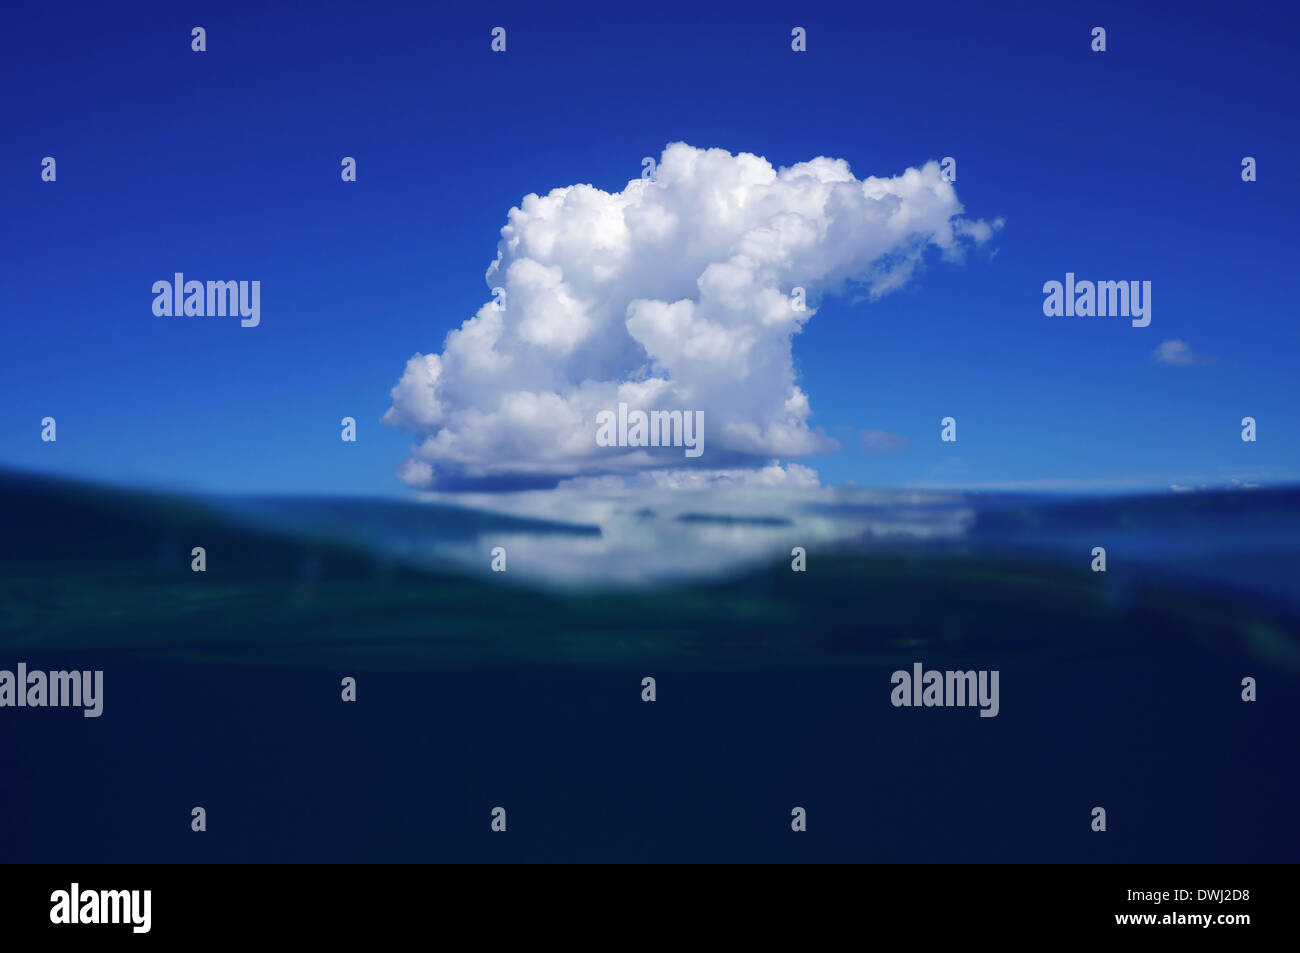 Blue sky and sea split by waterline with a cloud reflected on water surface of the Caribbean sea - Stock Image